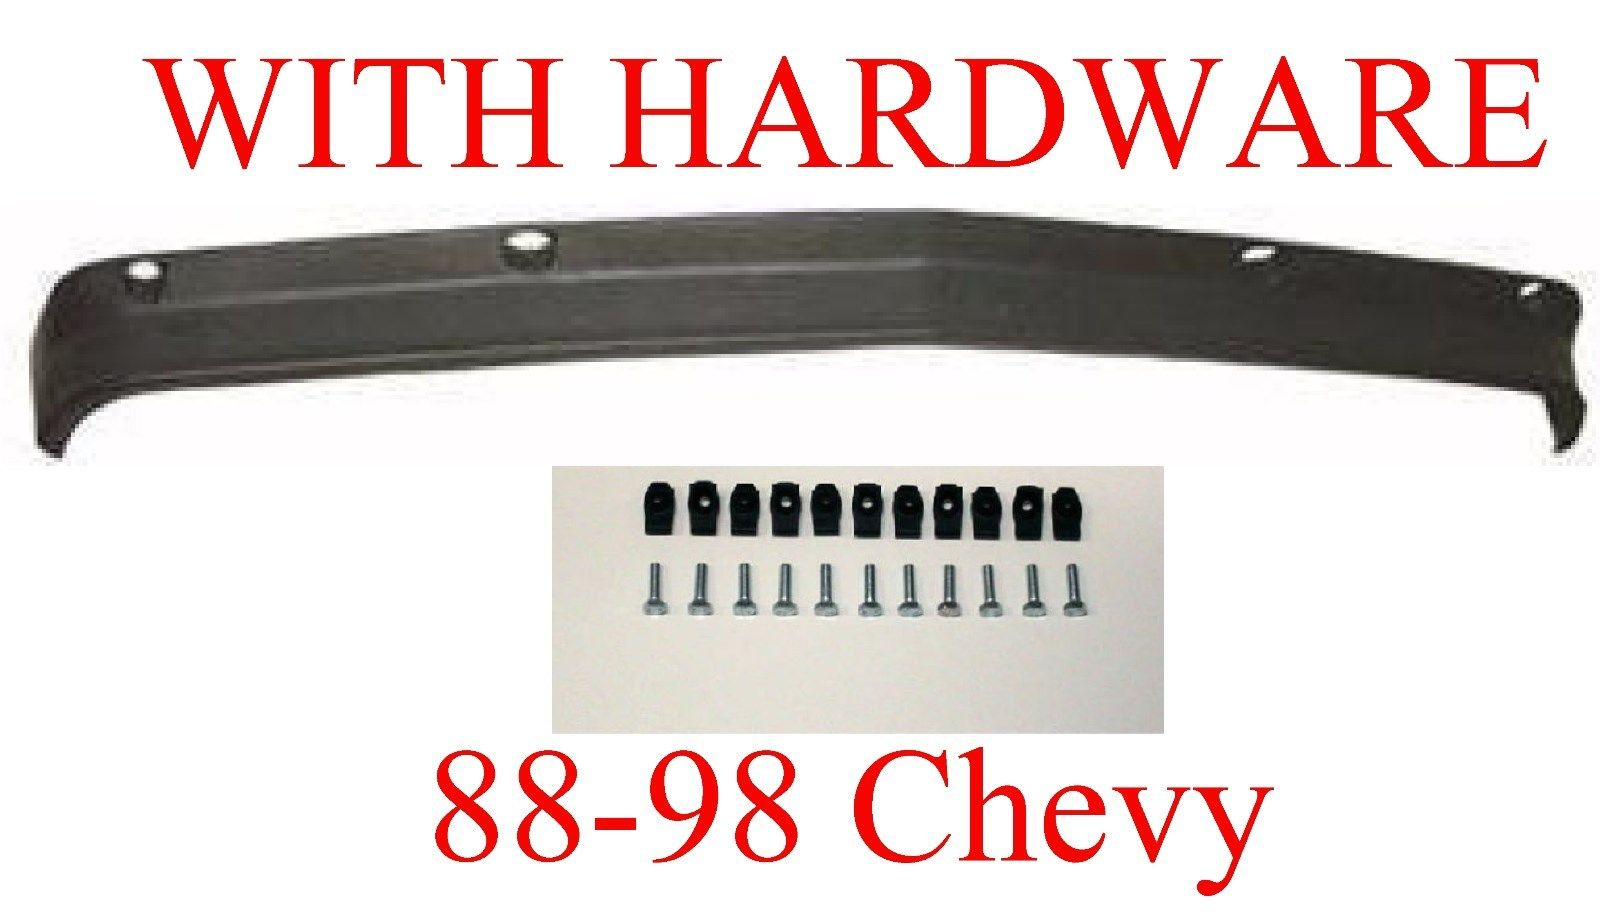 All Chevy 98 chevy bumper : 88-98 Chevy GMC Lower Bumper Valance With-Out Holes, MrTailLight ...